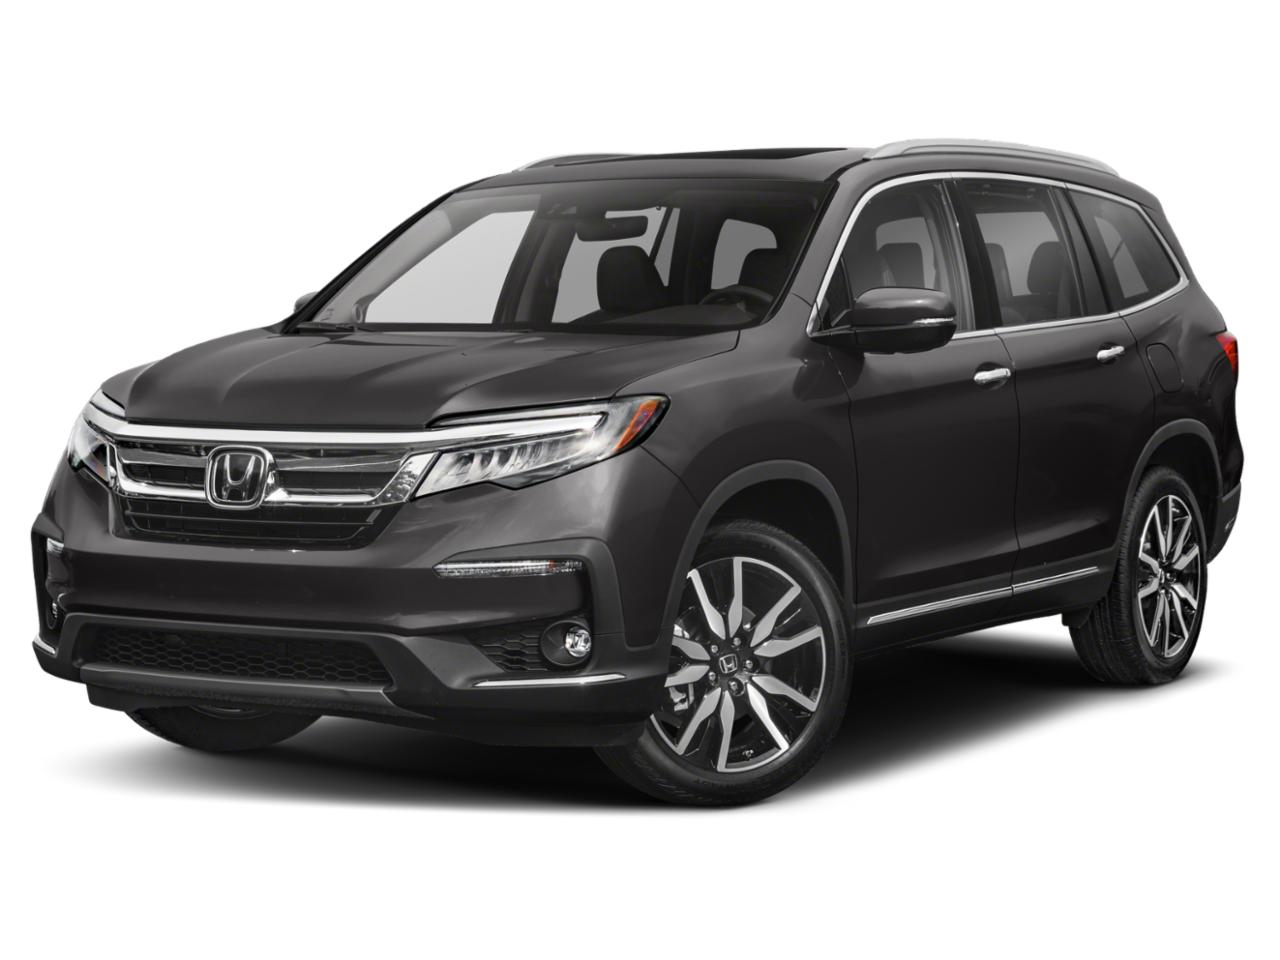 2019 Honda Pilot Vehicle Photo in Bowie, MD 20716